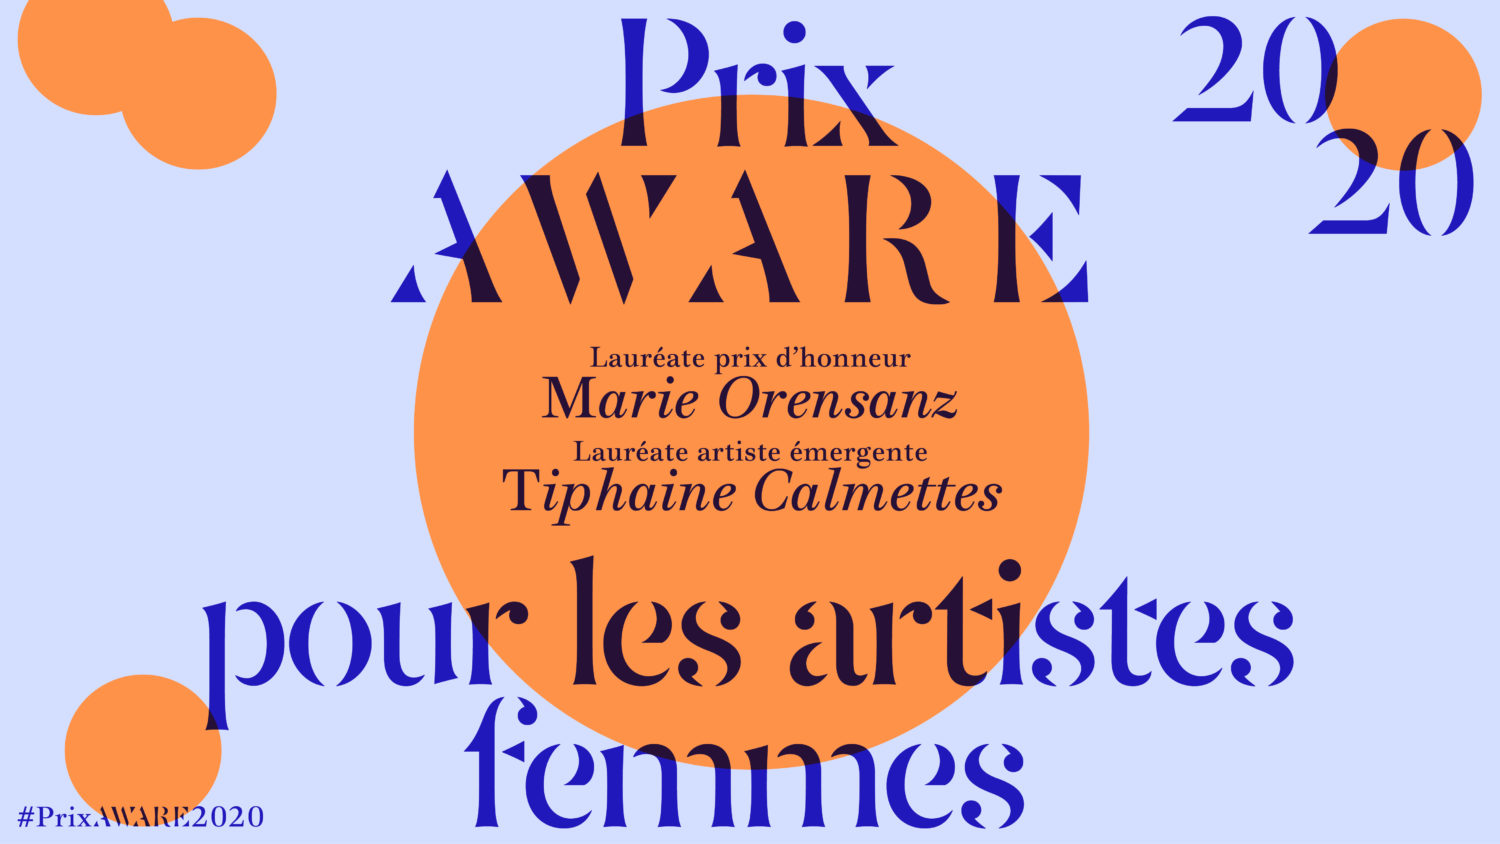 2020 - AWARE Artistes femmes / women artists